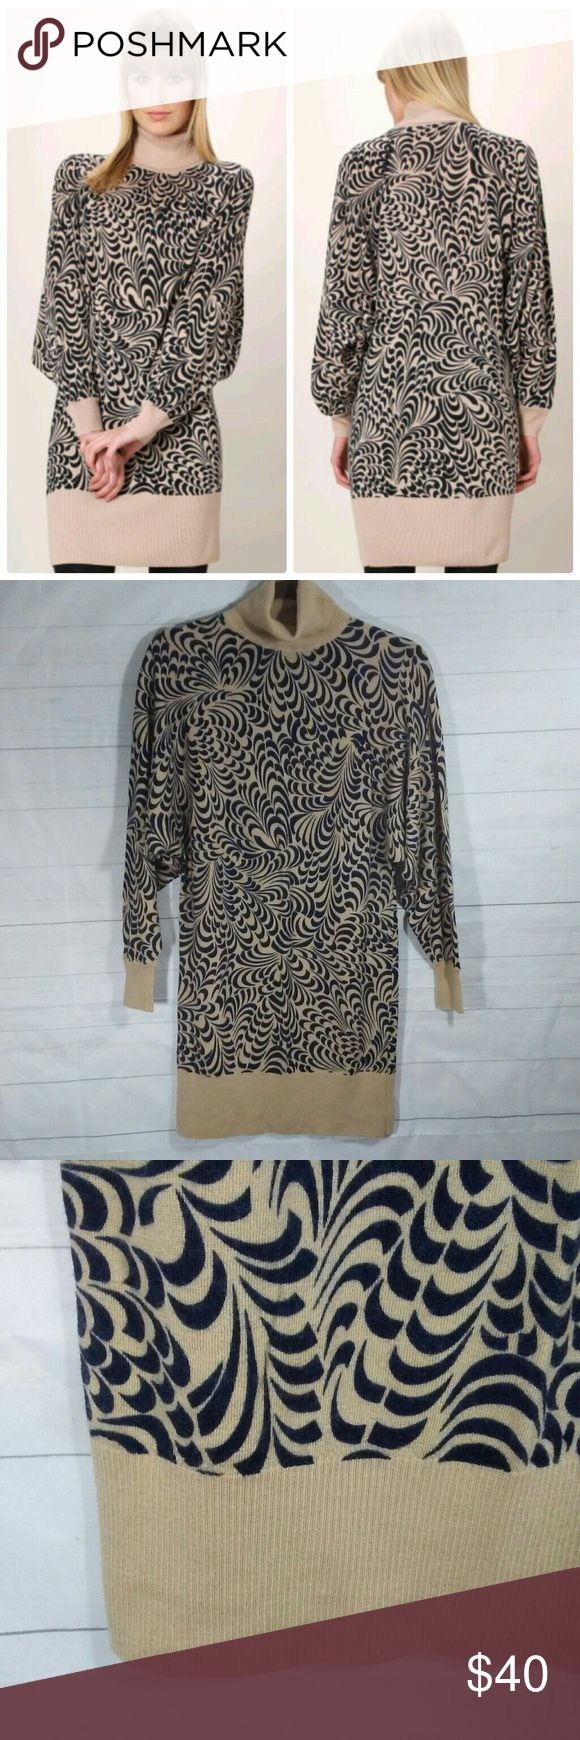 """{French Connection} tunic dress French Connection 100% wool batwing turtleneck jumper tunic dress wear over leggings or pair with knee high boots  Tan /Black  Size  2 Length 32"""" French Connection Dresses"""